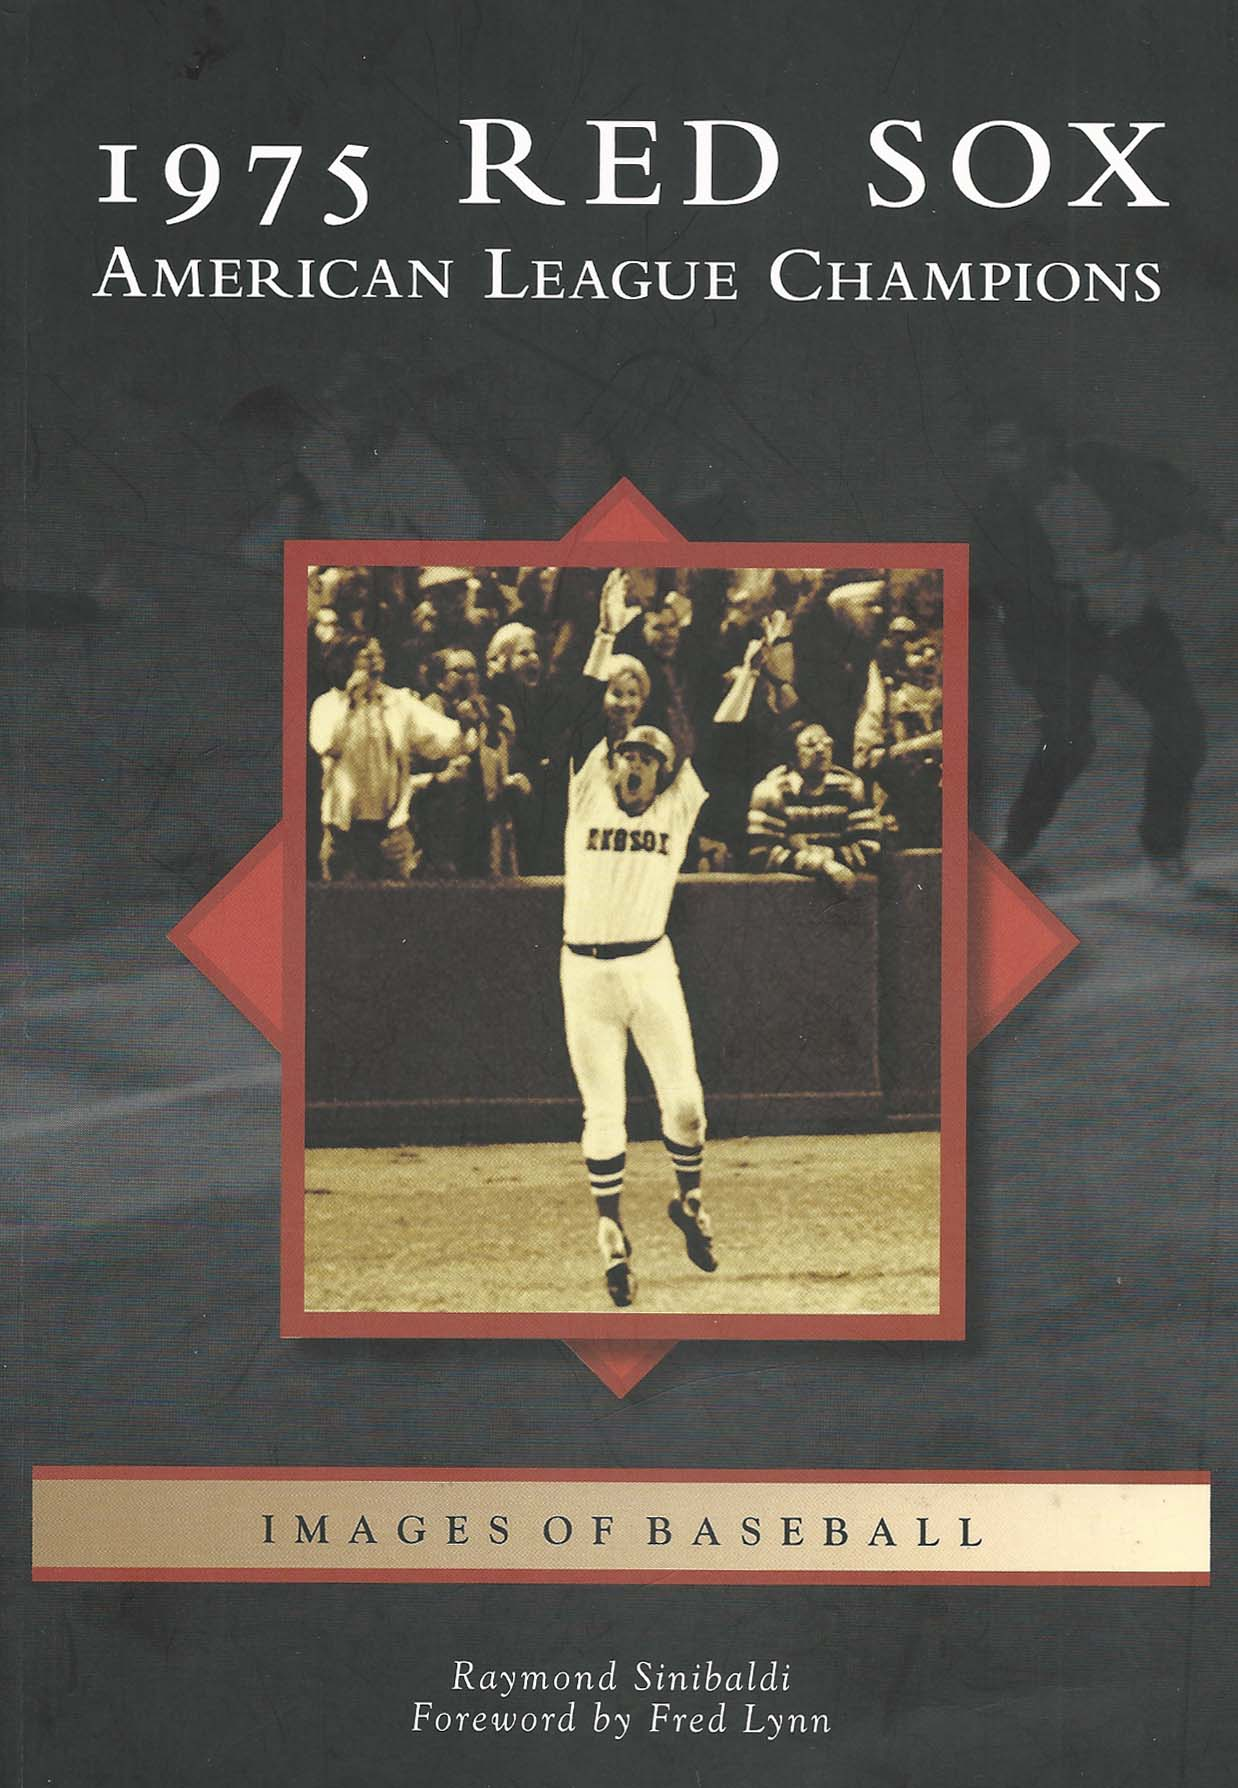 1975 Red Sox book